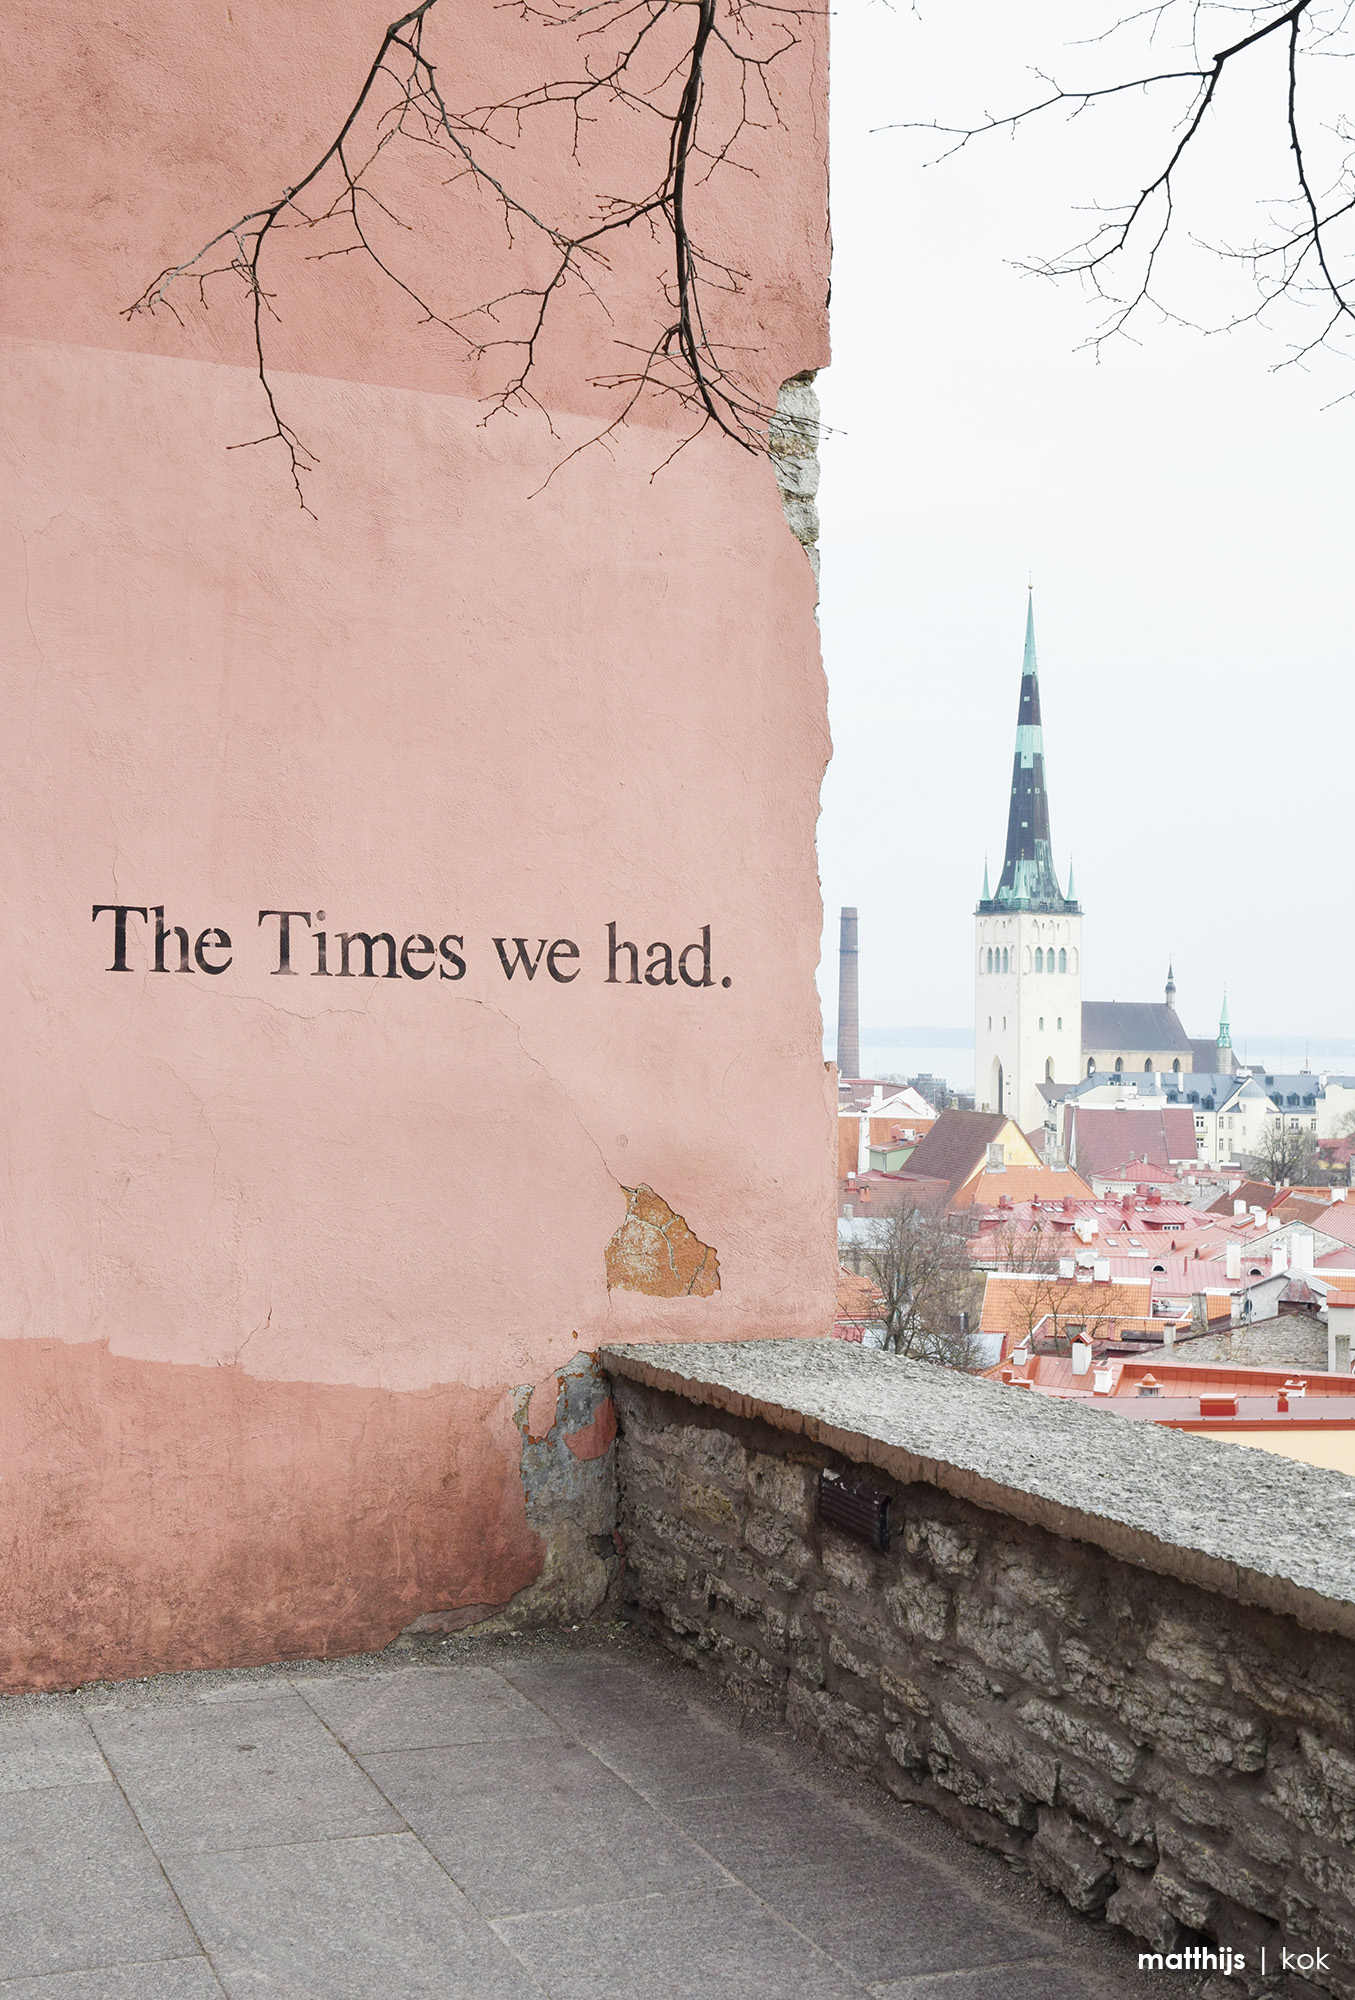 The Times we had, Kohtuotsa Platform, Tallinn Estonia | Photo by Matthijs Kok